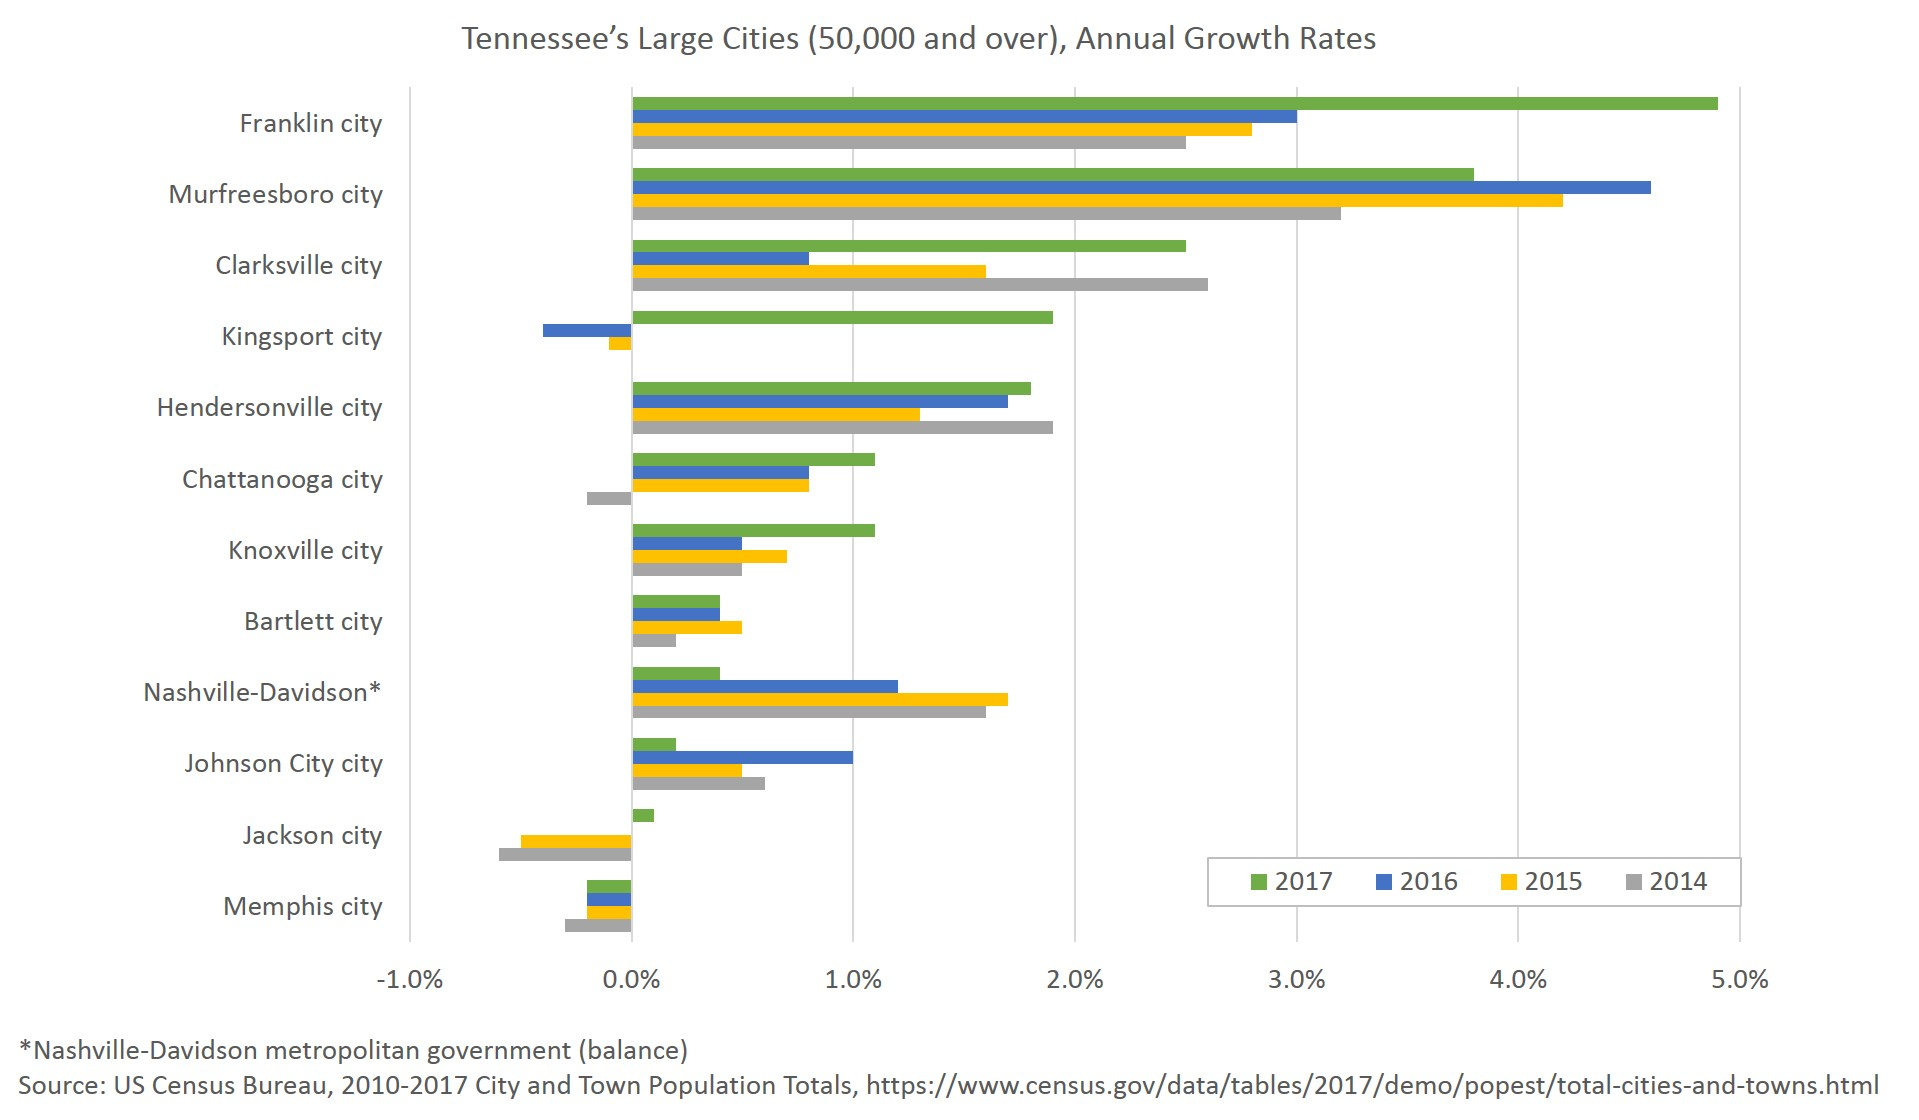 Annual growth rates of Tennessee's large cities 2014 through 2017